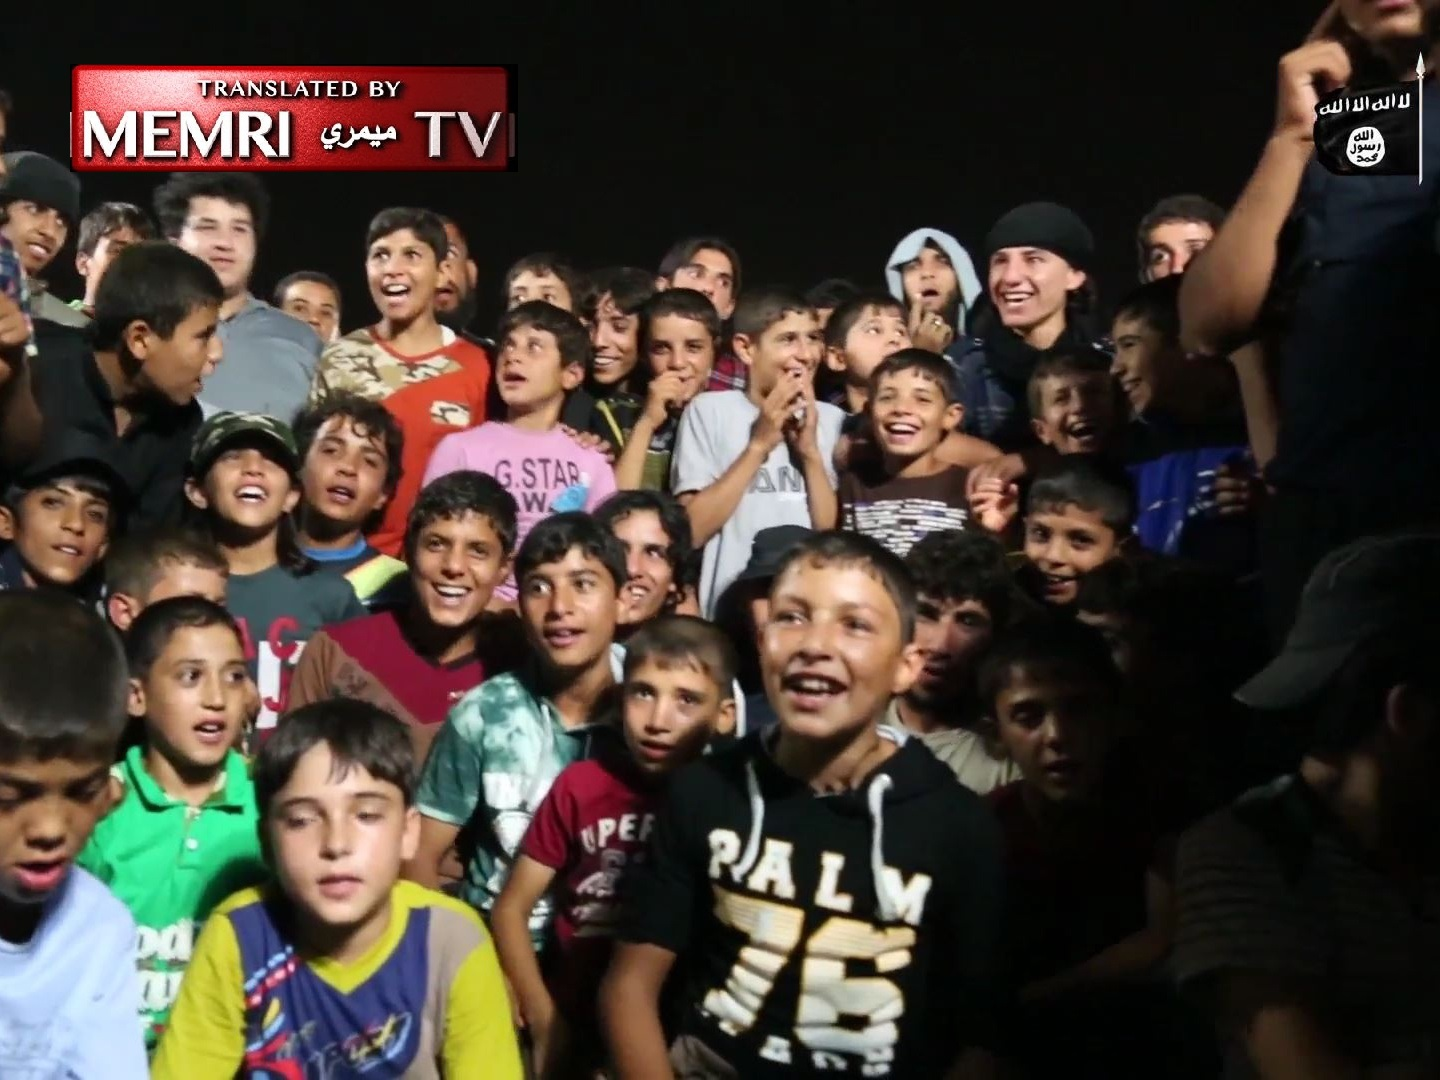 Children Vow to Slaughter Kurds in an ISIS Video Depicting Eid Al-Adha Celebrations in Mosul